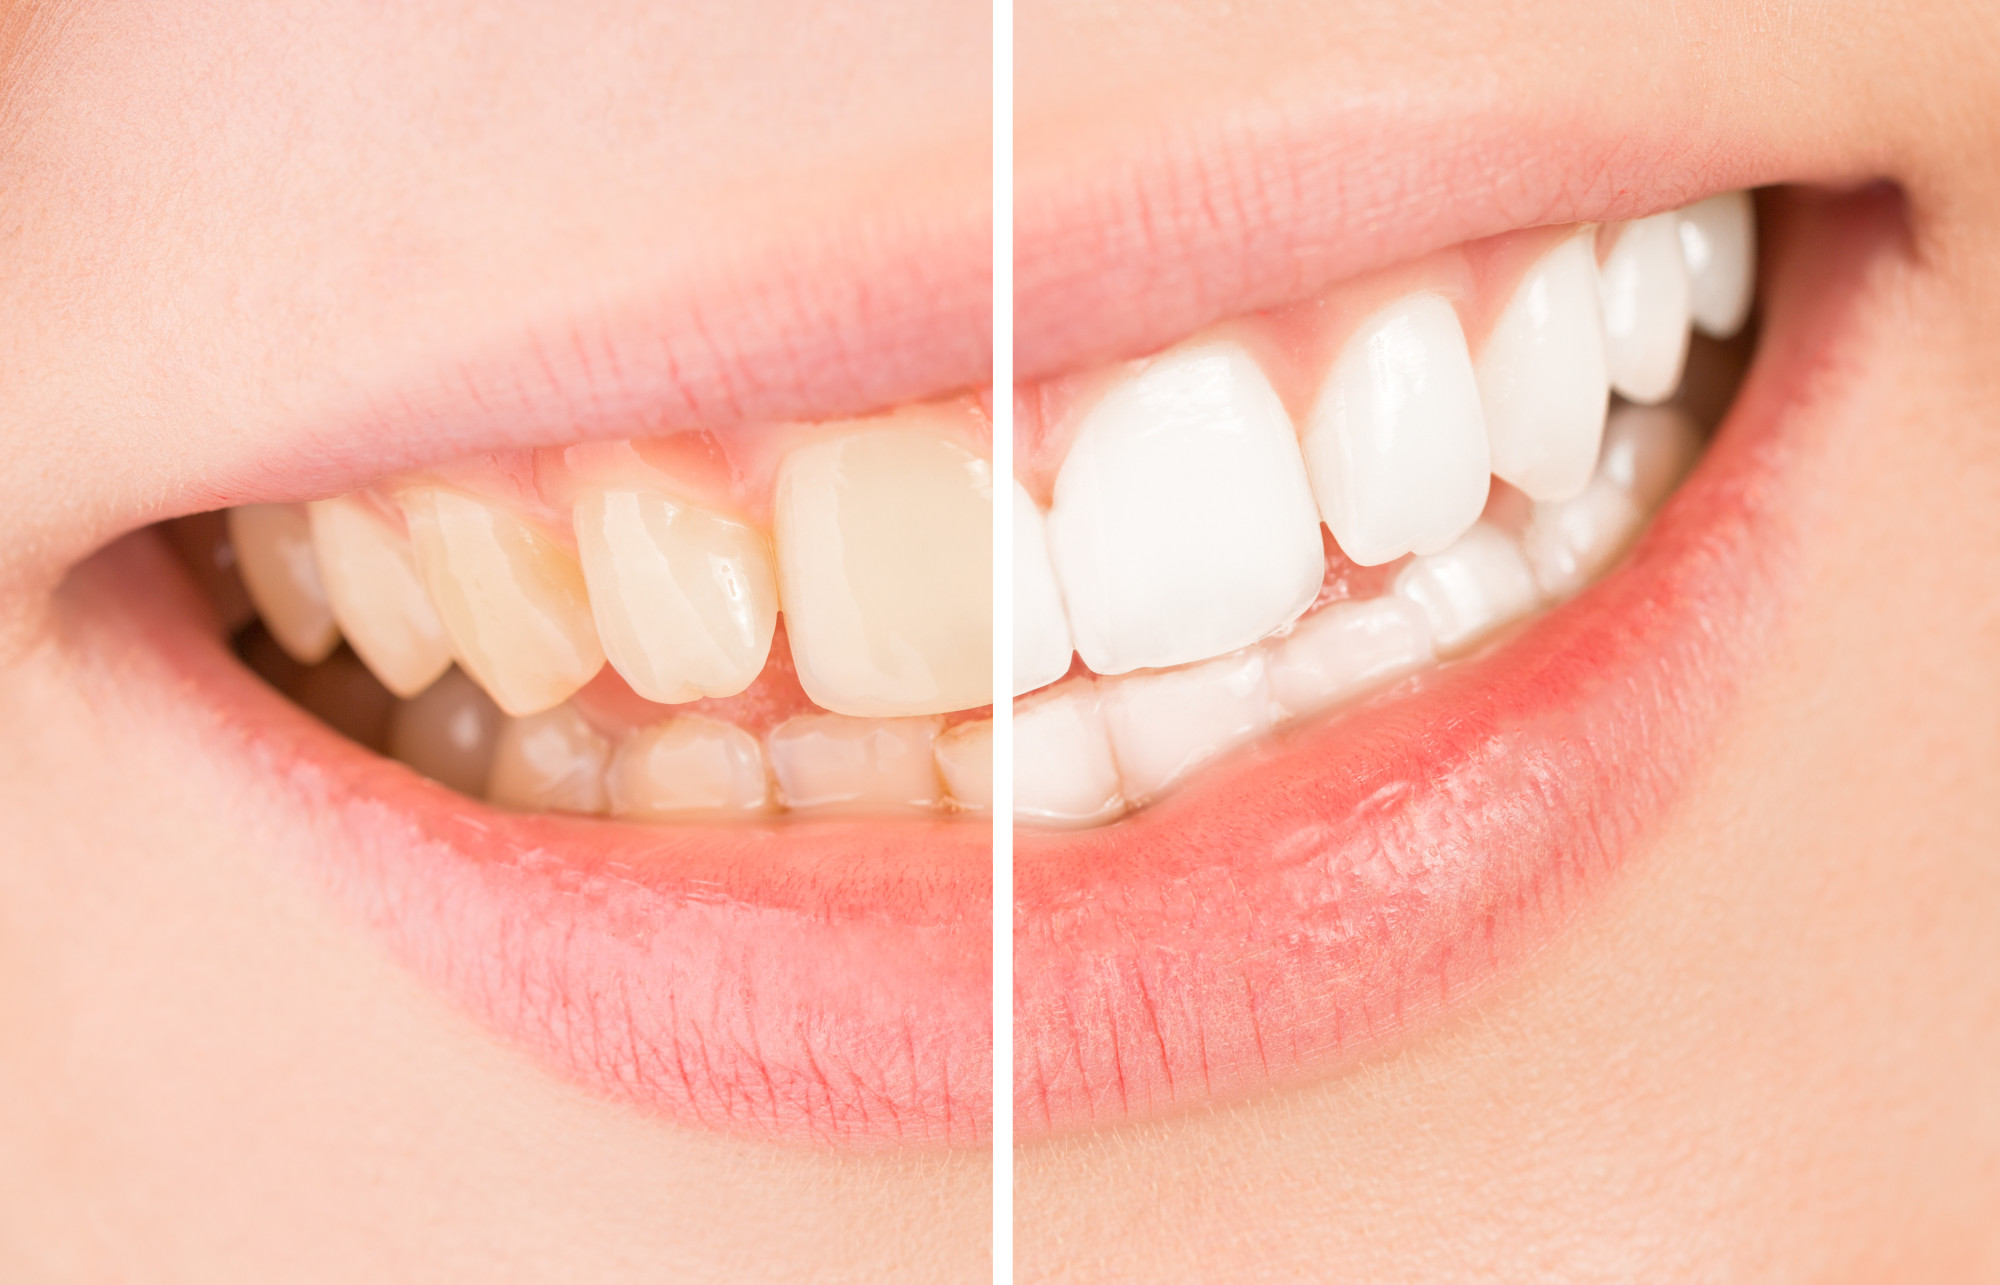 10 Teeth Whitening Tips for a Brighter Smile